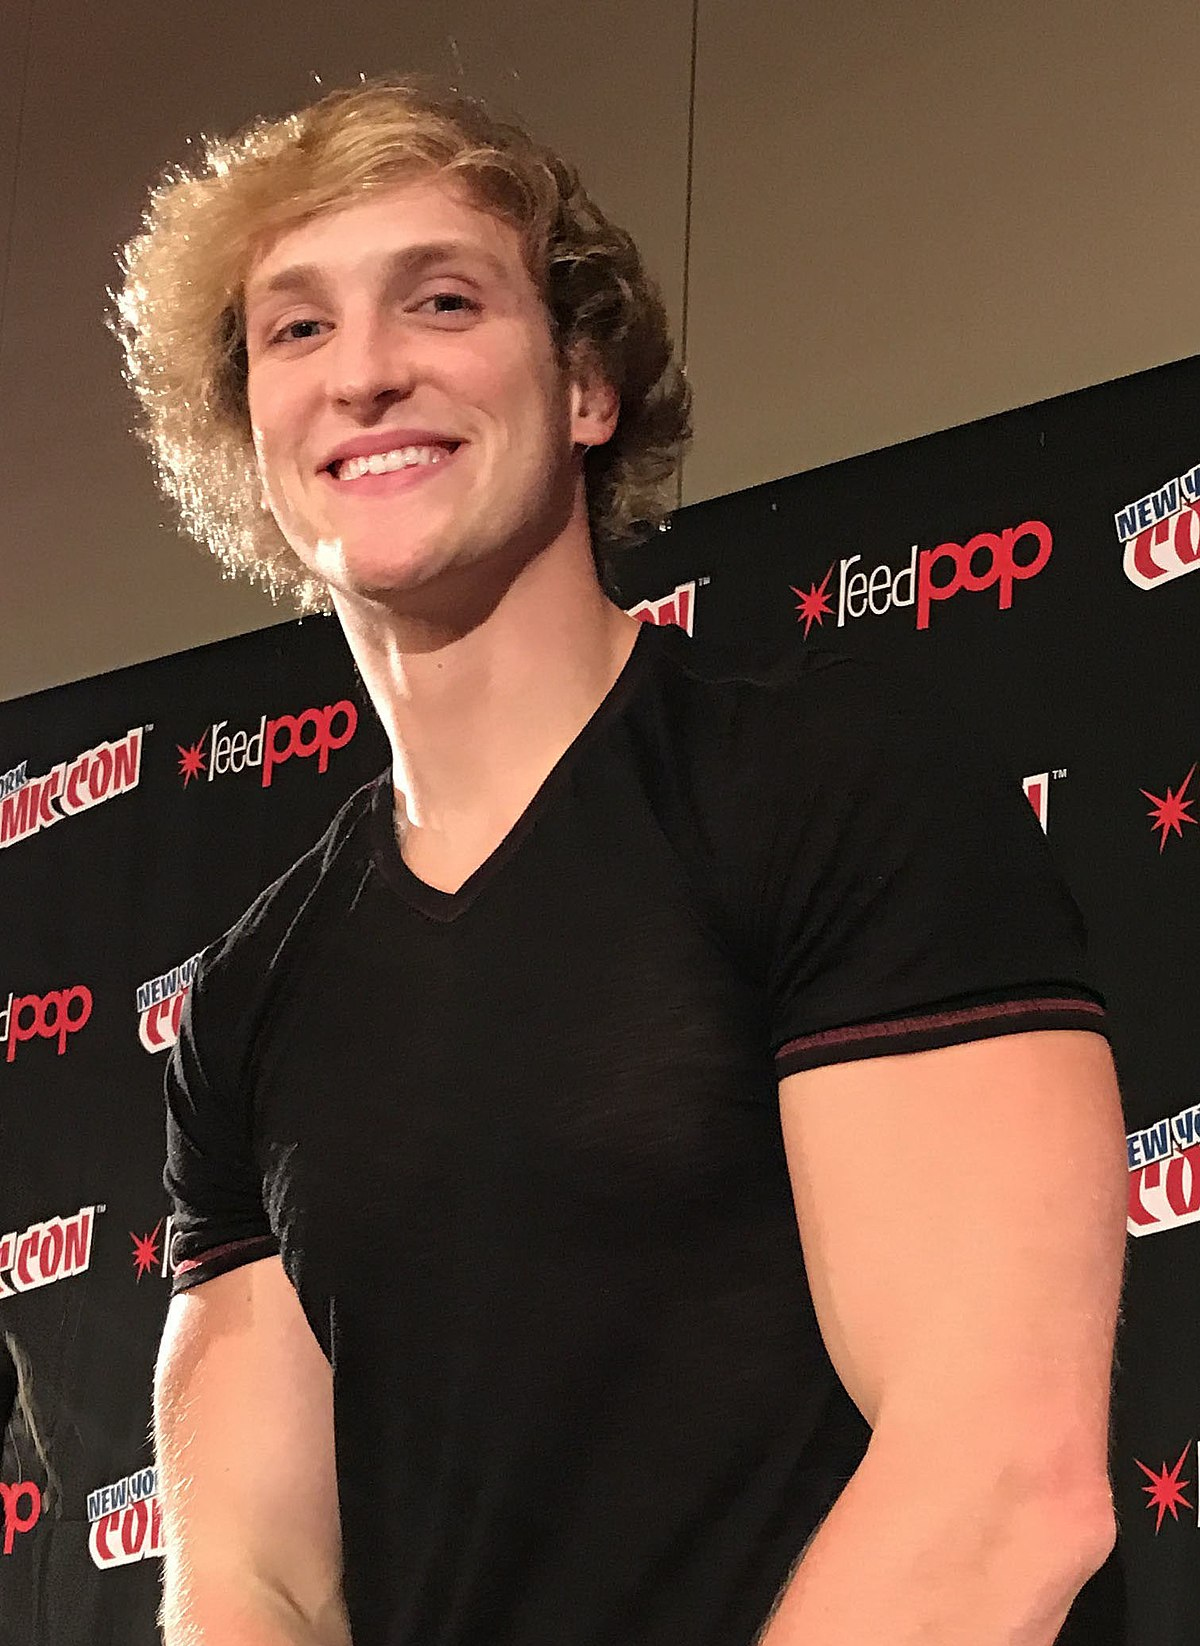 logan paul - photo #8